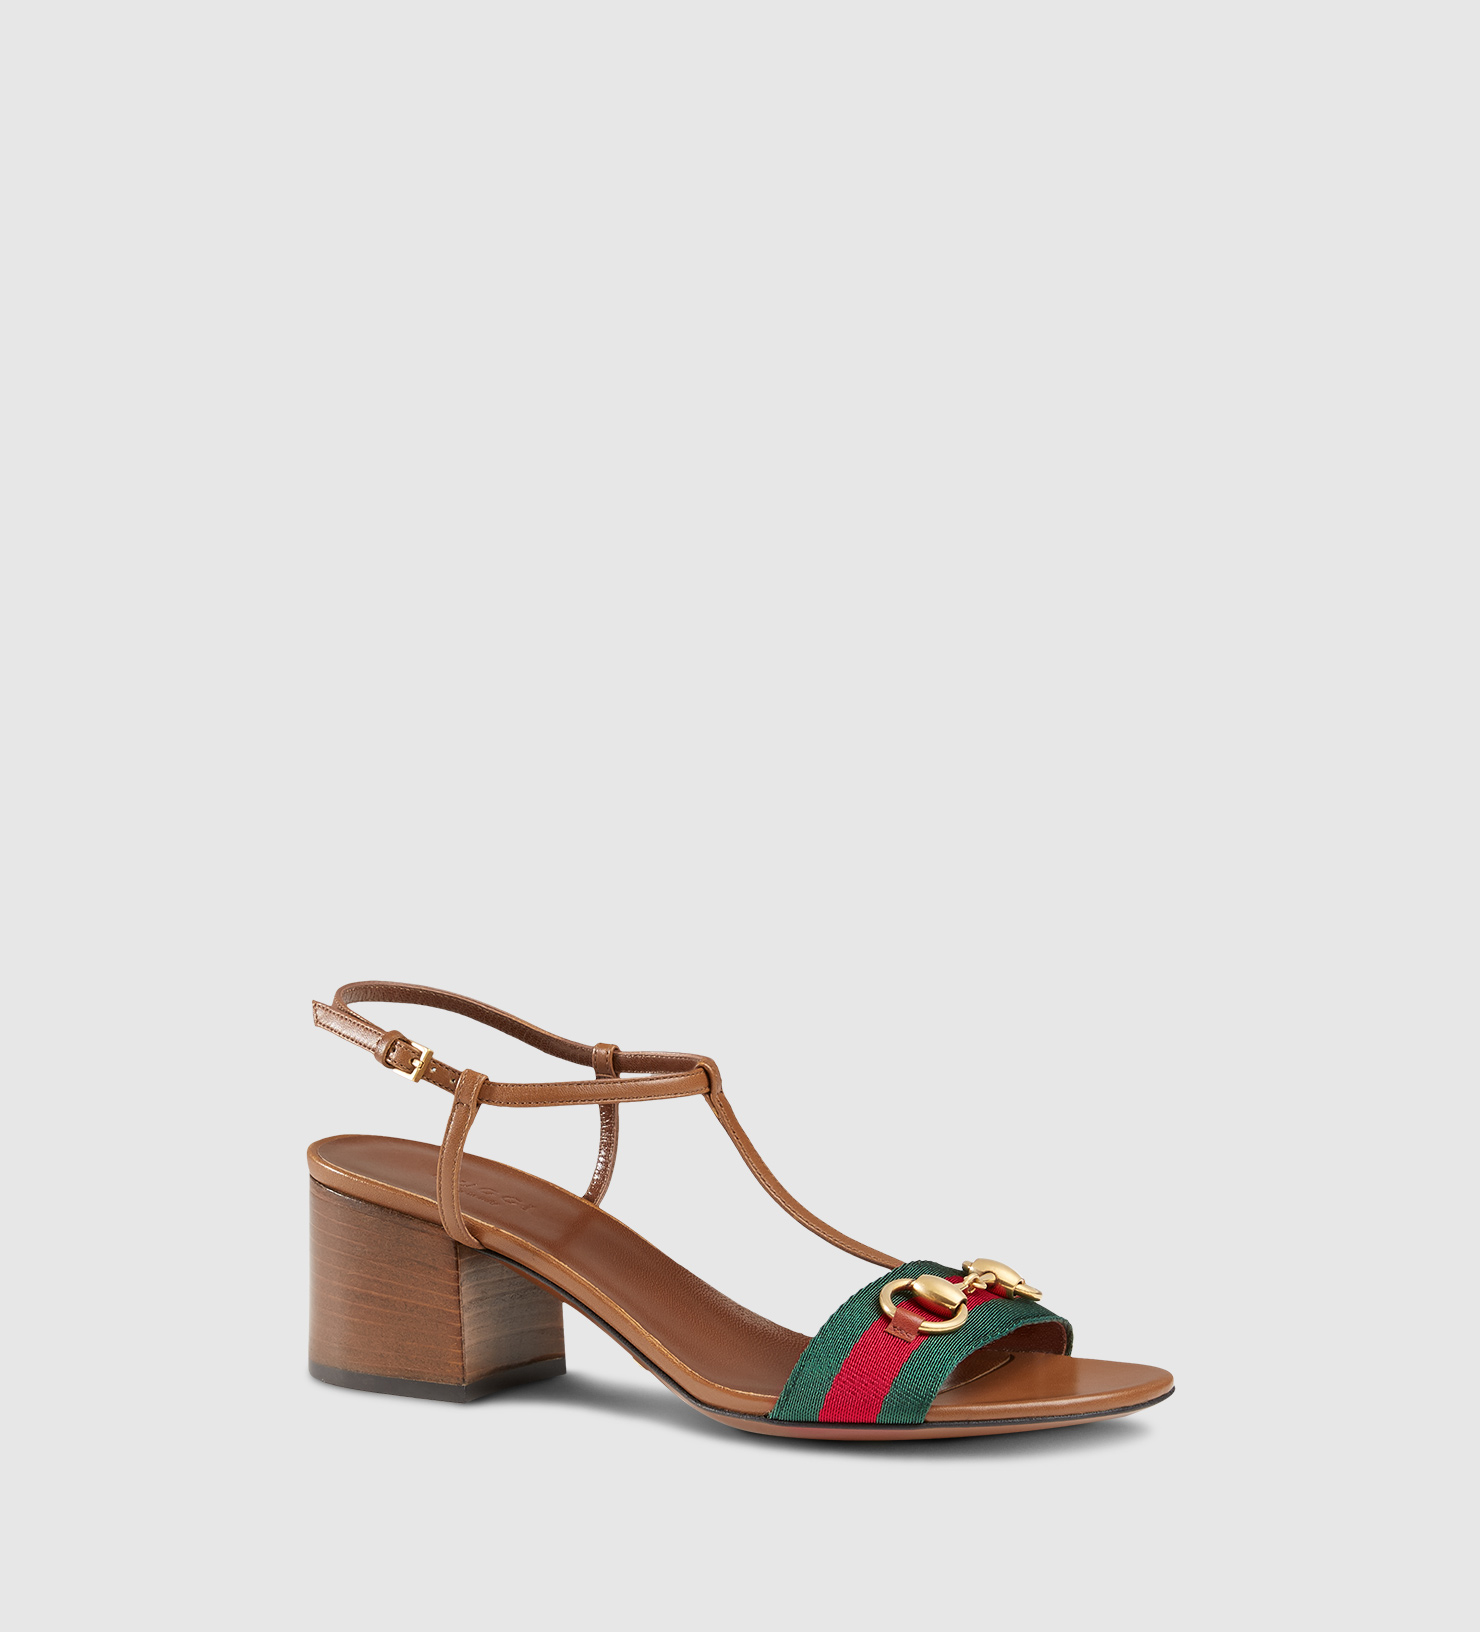 21220d6f49f Lyst - Gucci Leather T-strap Mid-heel Sandal With Web in Brown